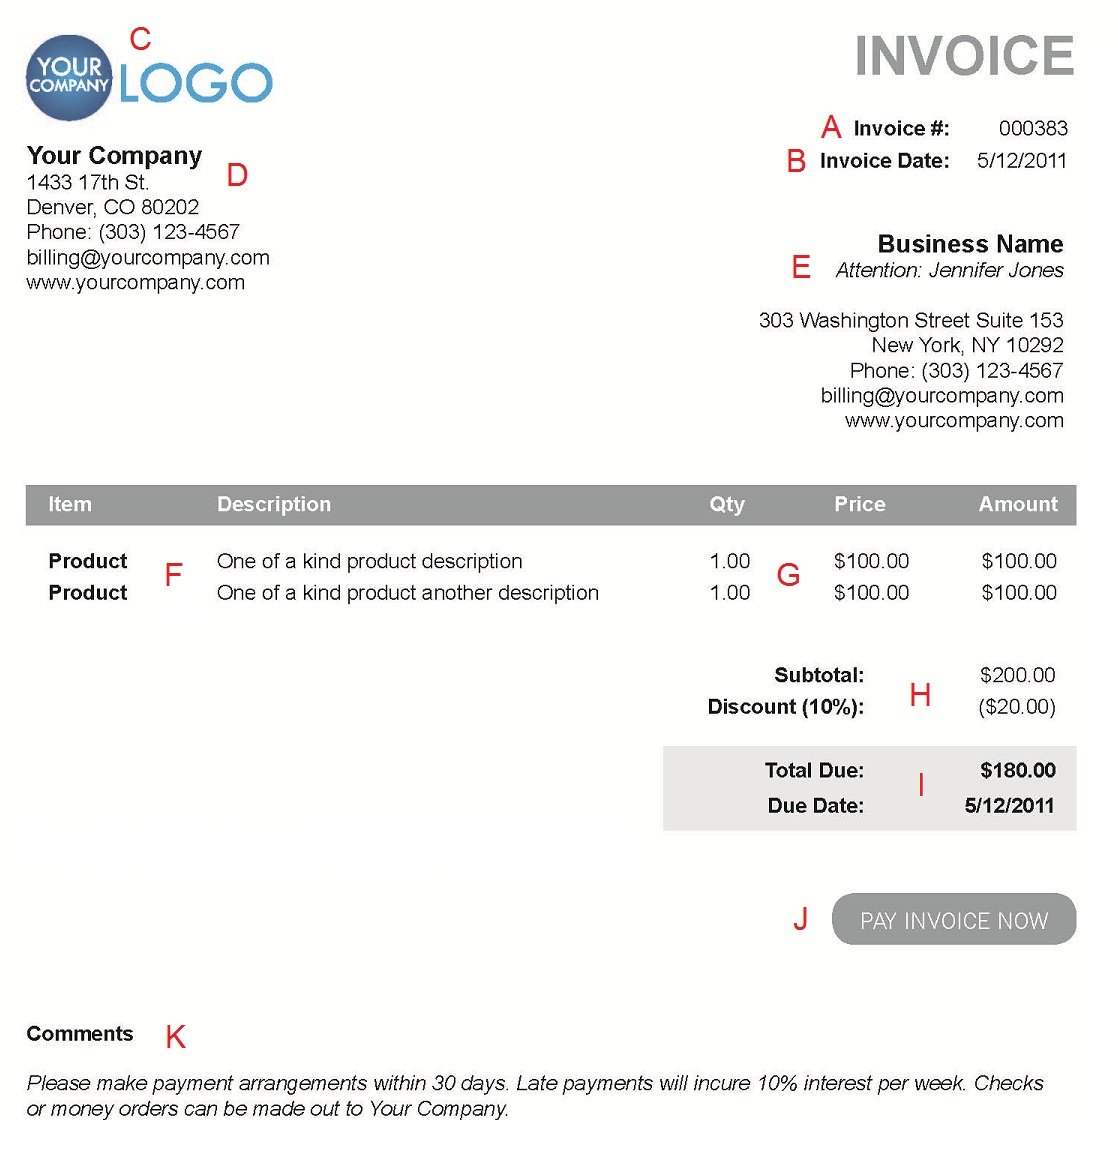 Pigbrotherus  Inspiring The  Different Sections Of An Electronic Payment Invoice With Goodlooking A  With Alluring Invoice Software For Pc Also Billing Invoice Template Word In Addition Paypal Buyer Protection Invoice And Write Off Unpaid Invoices As Well As Edifact Invoic Additionally Provide Invoice From Paysimplecom With Pigbrotherus  Goodlooking The  Different Sections Of An Electronic Payment Invoice With Alluring A  And Inspiring Invoice Software For Pc Also Billing Invoice Template Word In Addition Paypal Buyer Protection Invoice From Paysimplecom